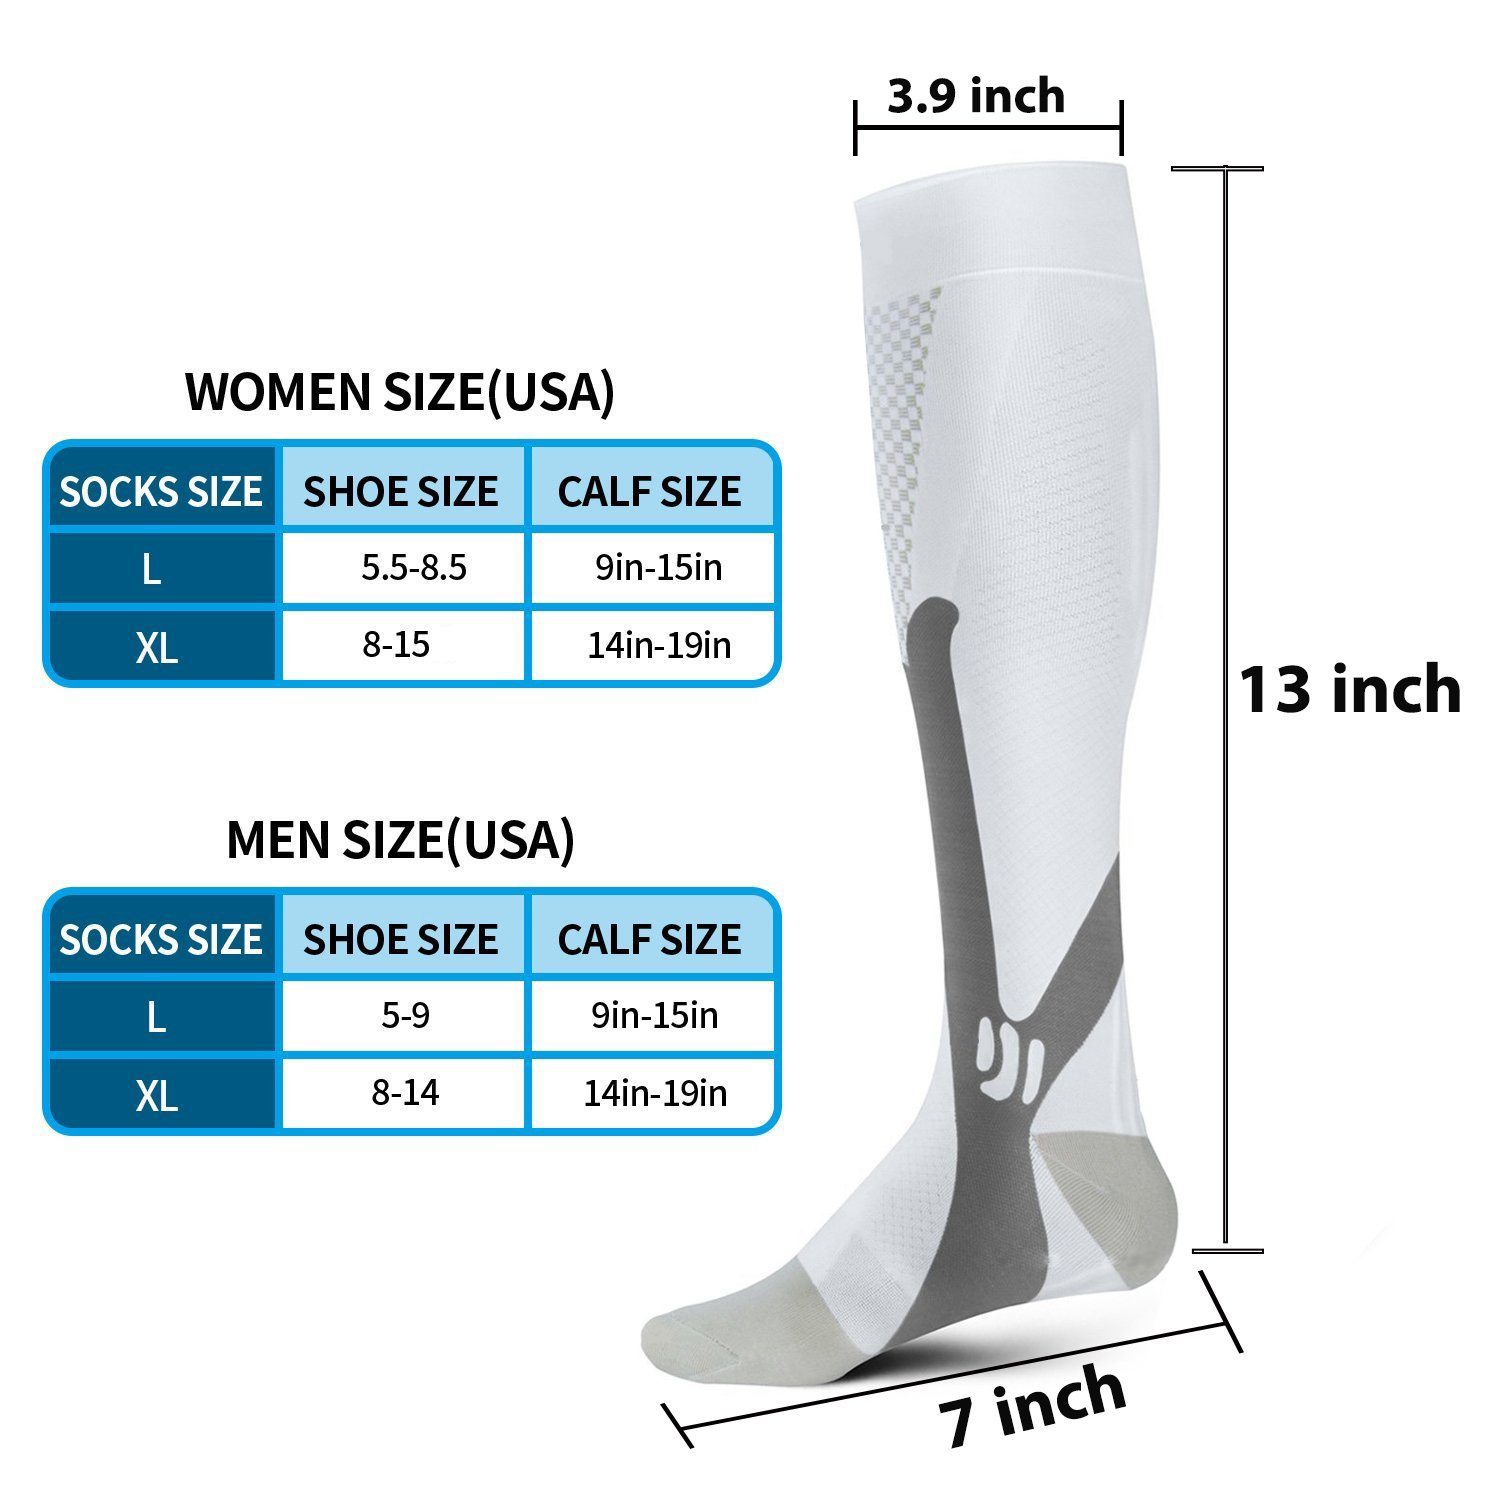 Aonsen Compression Socks for Men & Women (2 Pair), Compression Stockings (20-30 mmHg) for Running, Medical, Athletic, Varicose Veins, Flight Travel, Pregnancy, Shin Splints, Circulation & Recovery by Aonsen (Image #5)